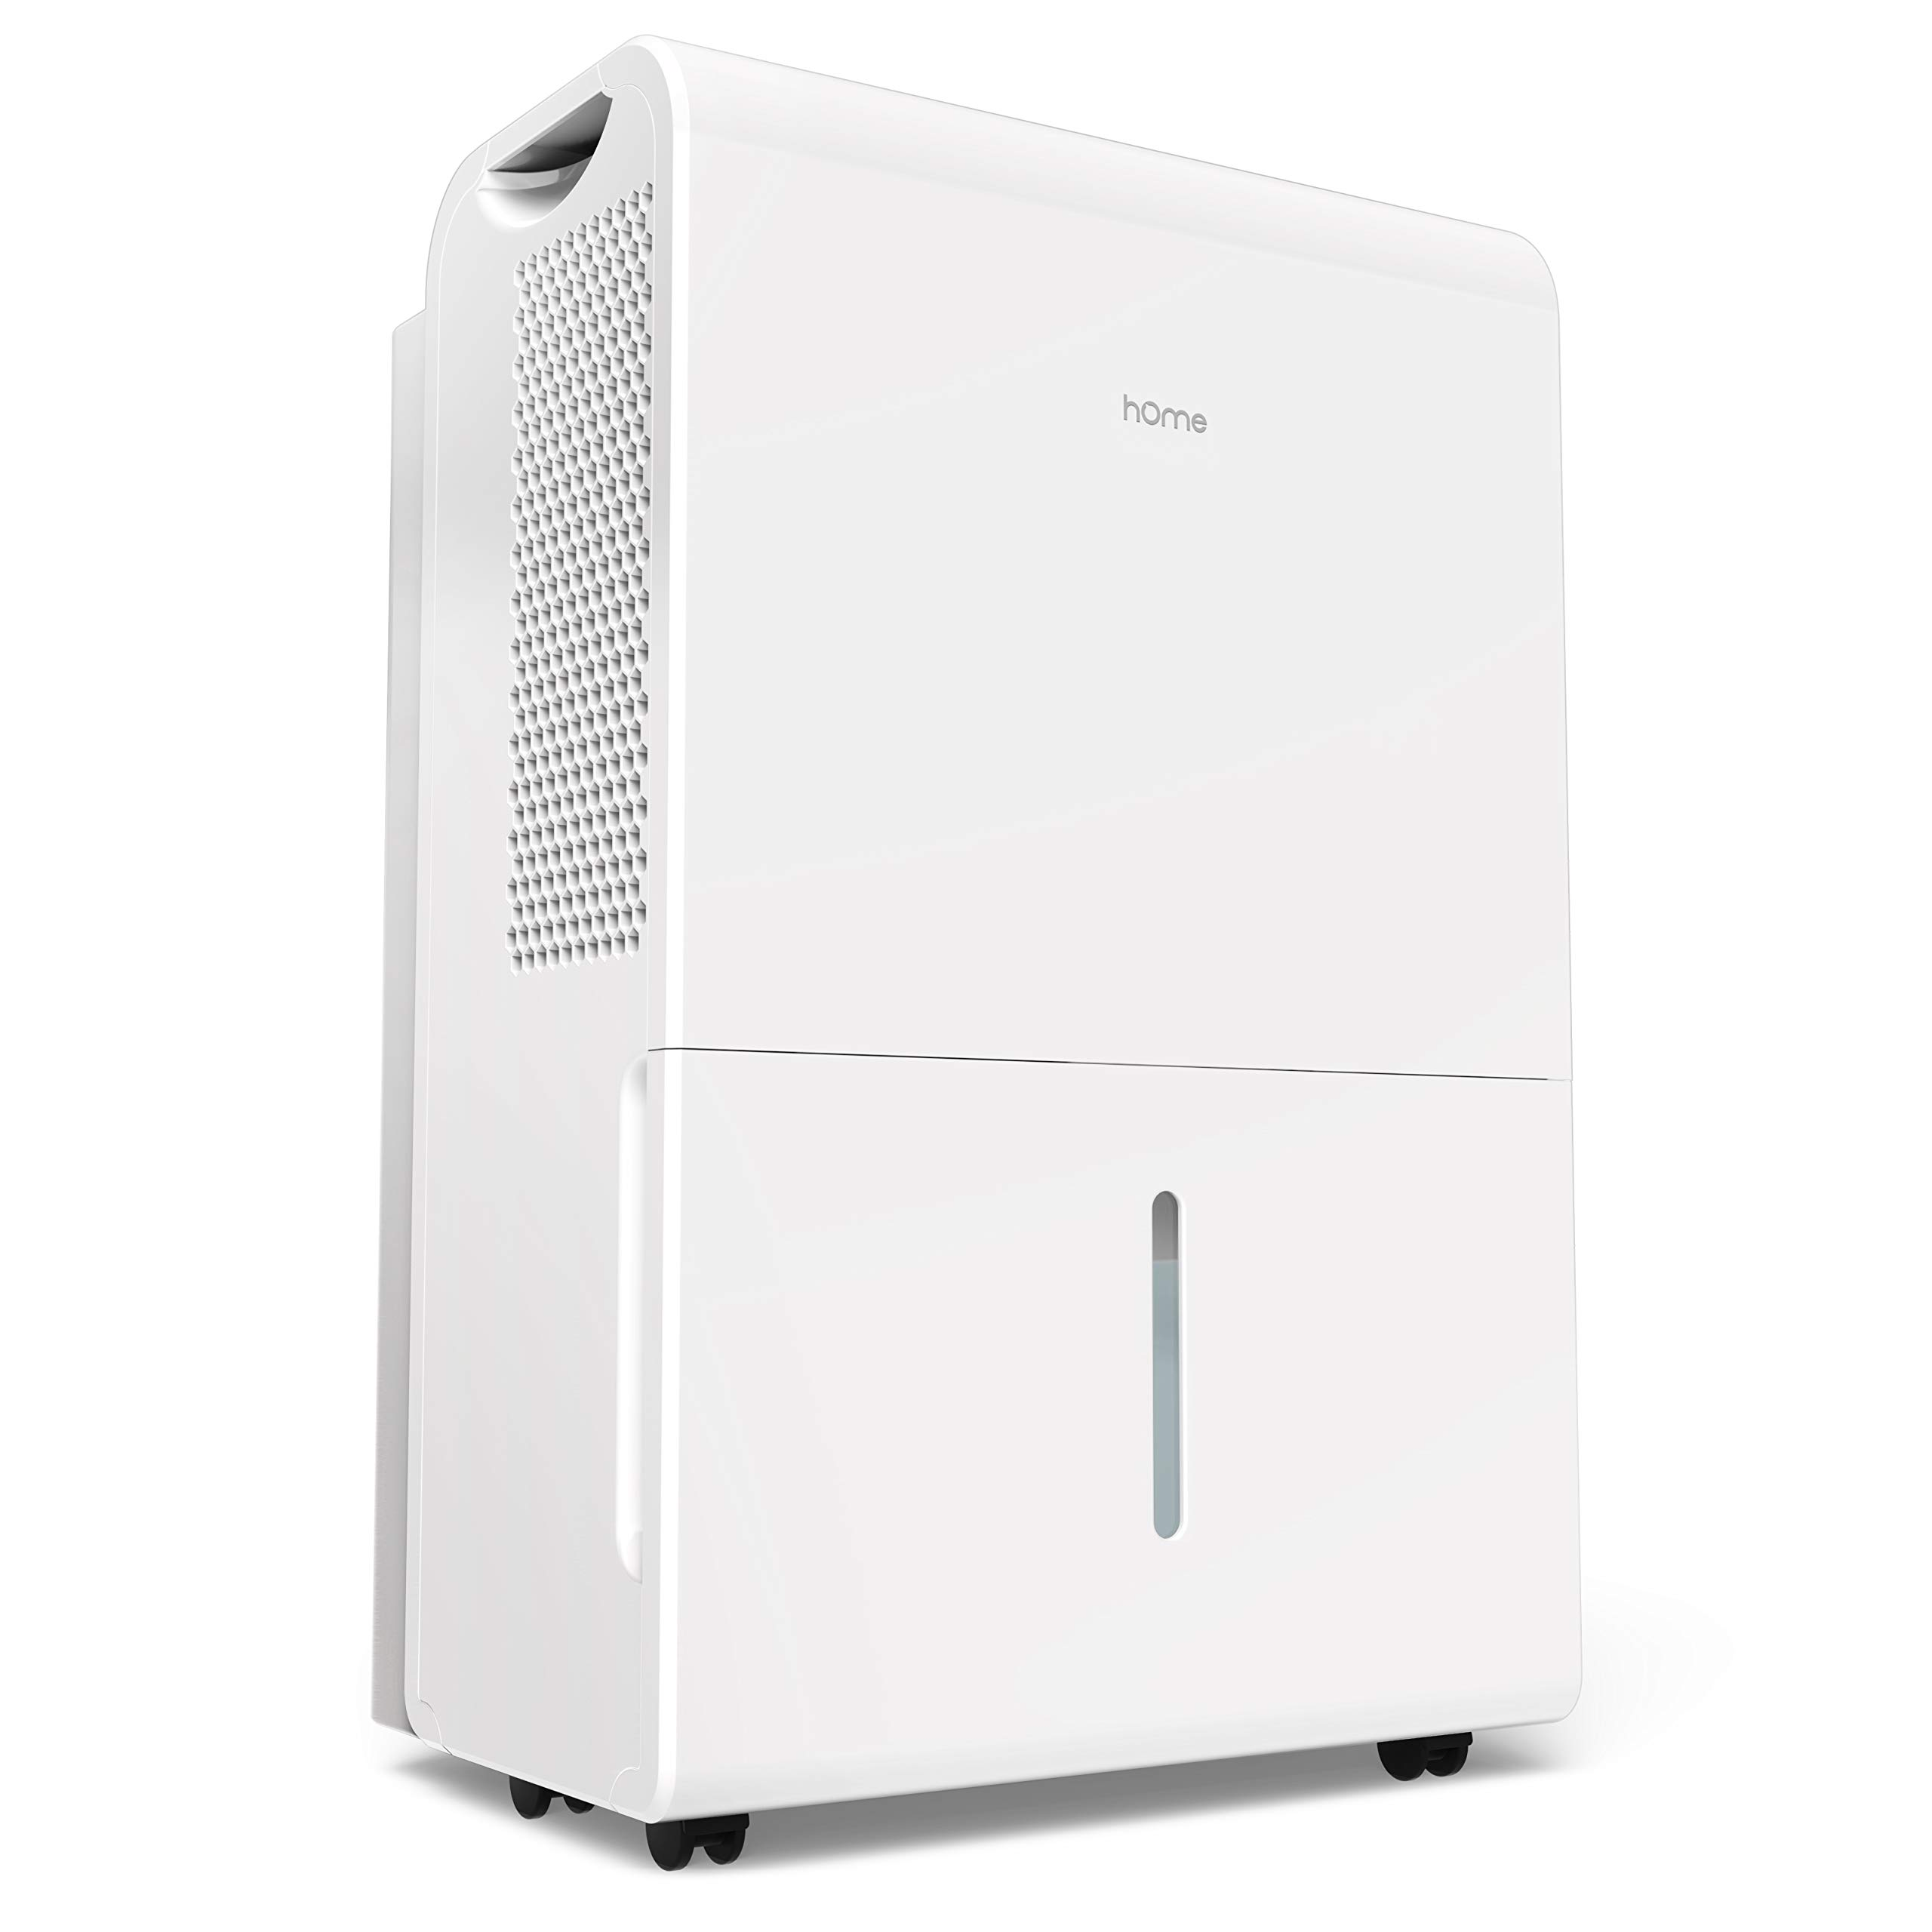 hOmeLabs 4,500 Sq. Ft Energy Star Dehumidifier for Extra Large Rooms and Basements - Efficiently Removes Moisture to Prevent Mold, Mildew and Allergens by hOmeLabs